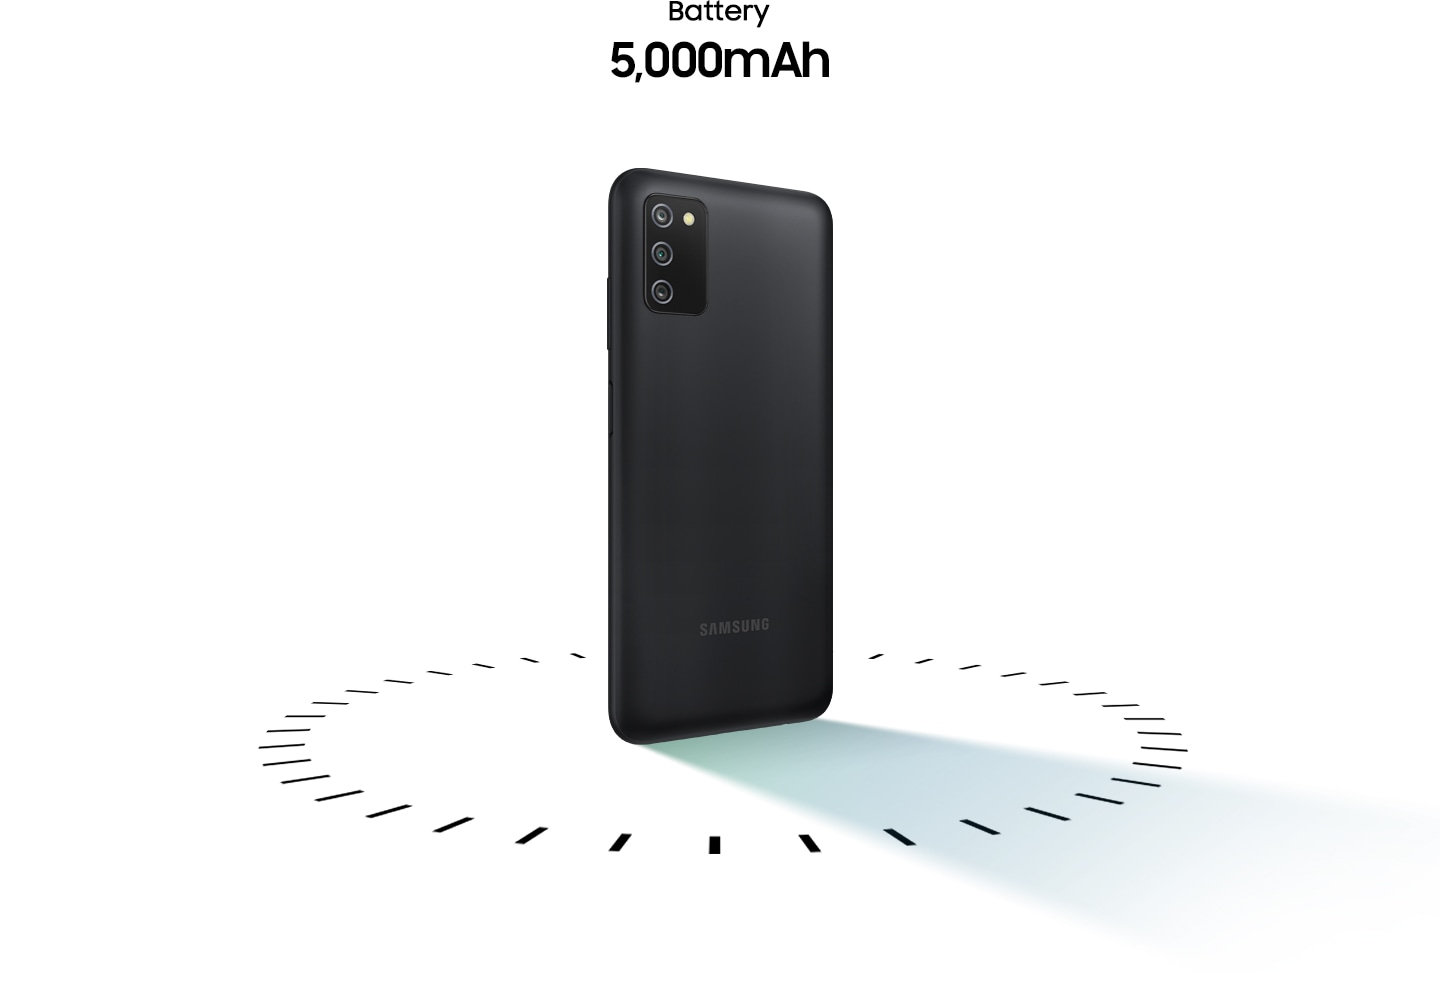 Galaxy A03s is standing with its back turned, surrounded by a dotted circle. Above are the words Battery 5,000mAh.